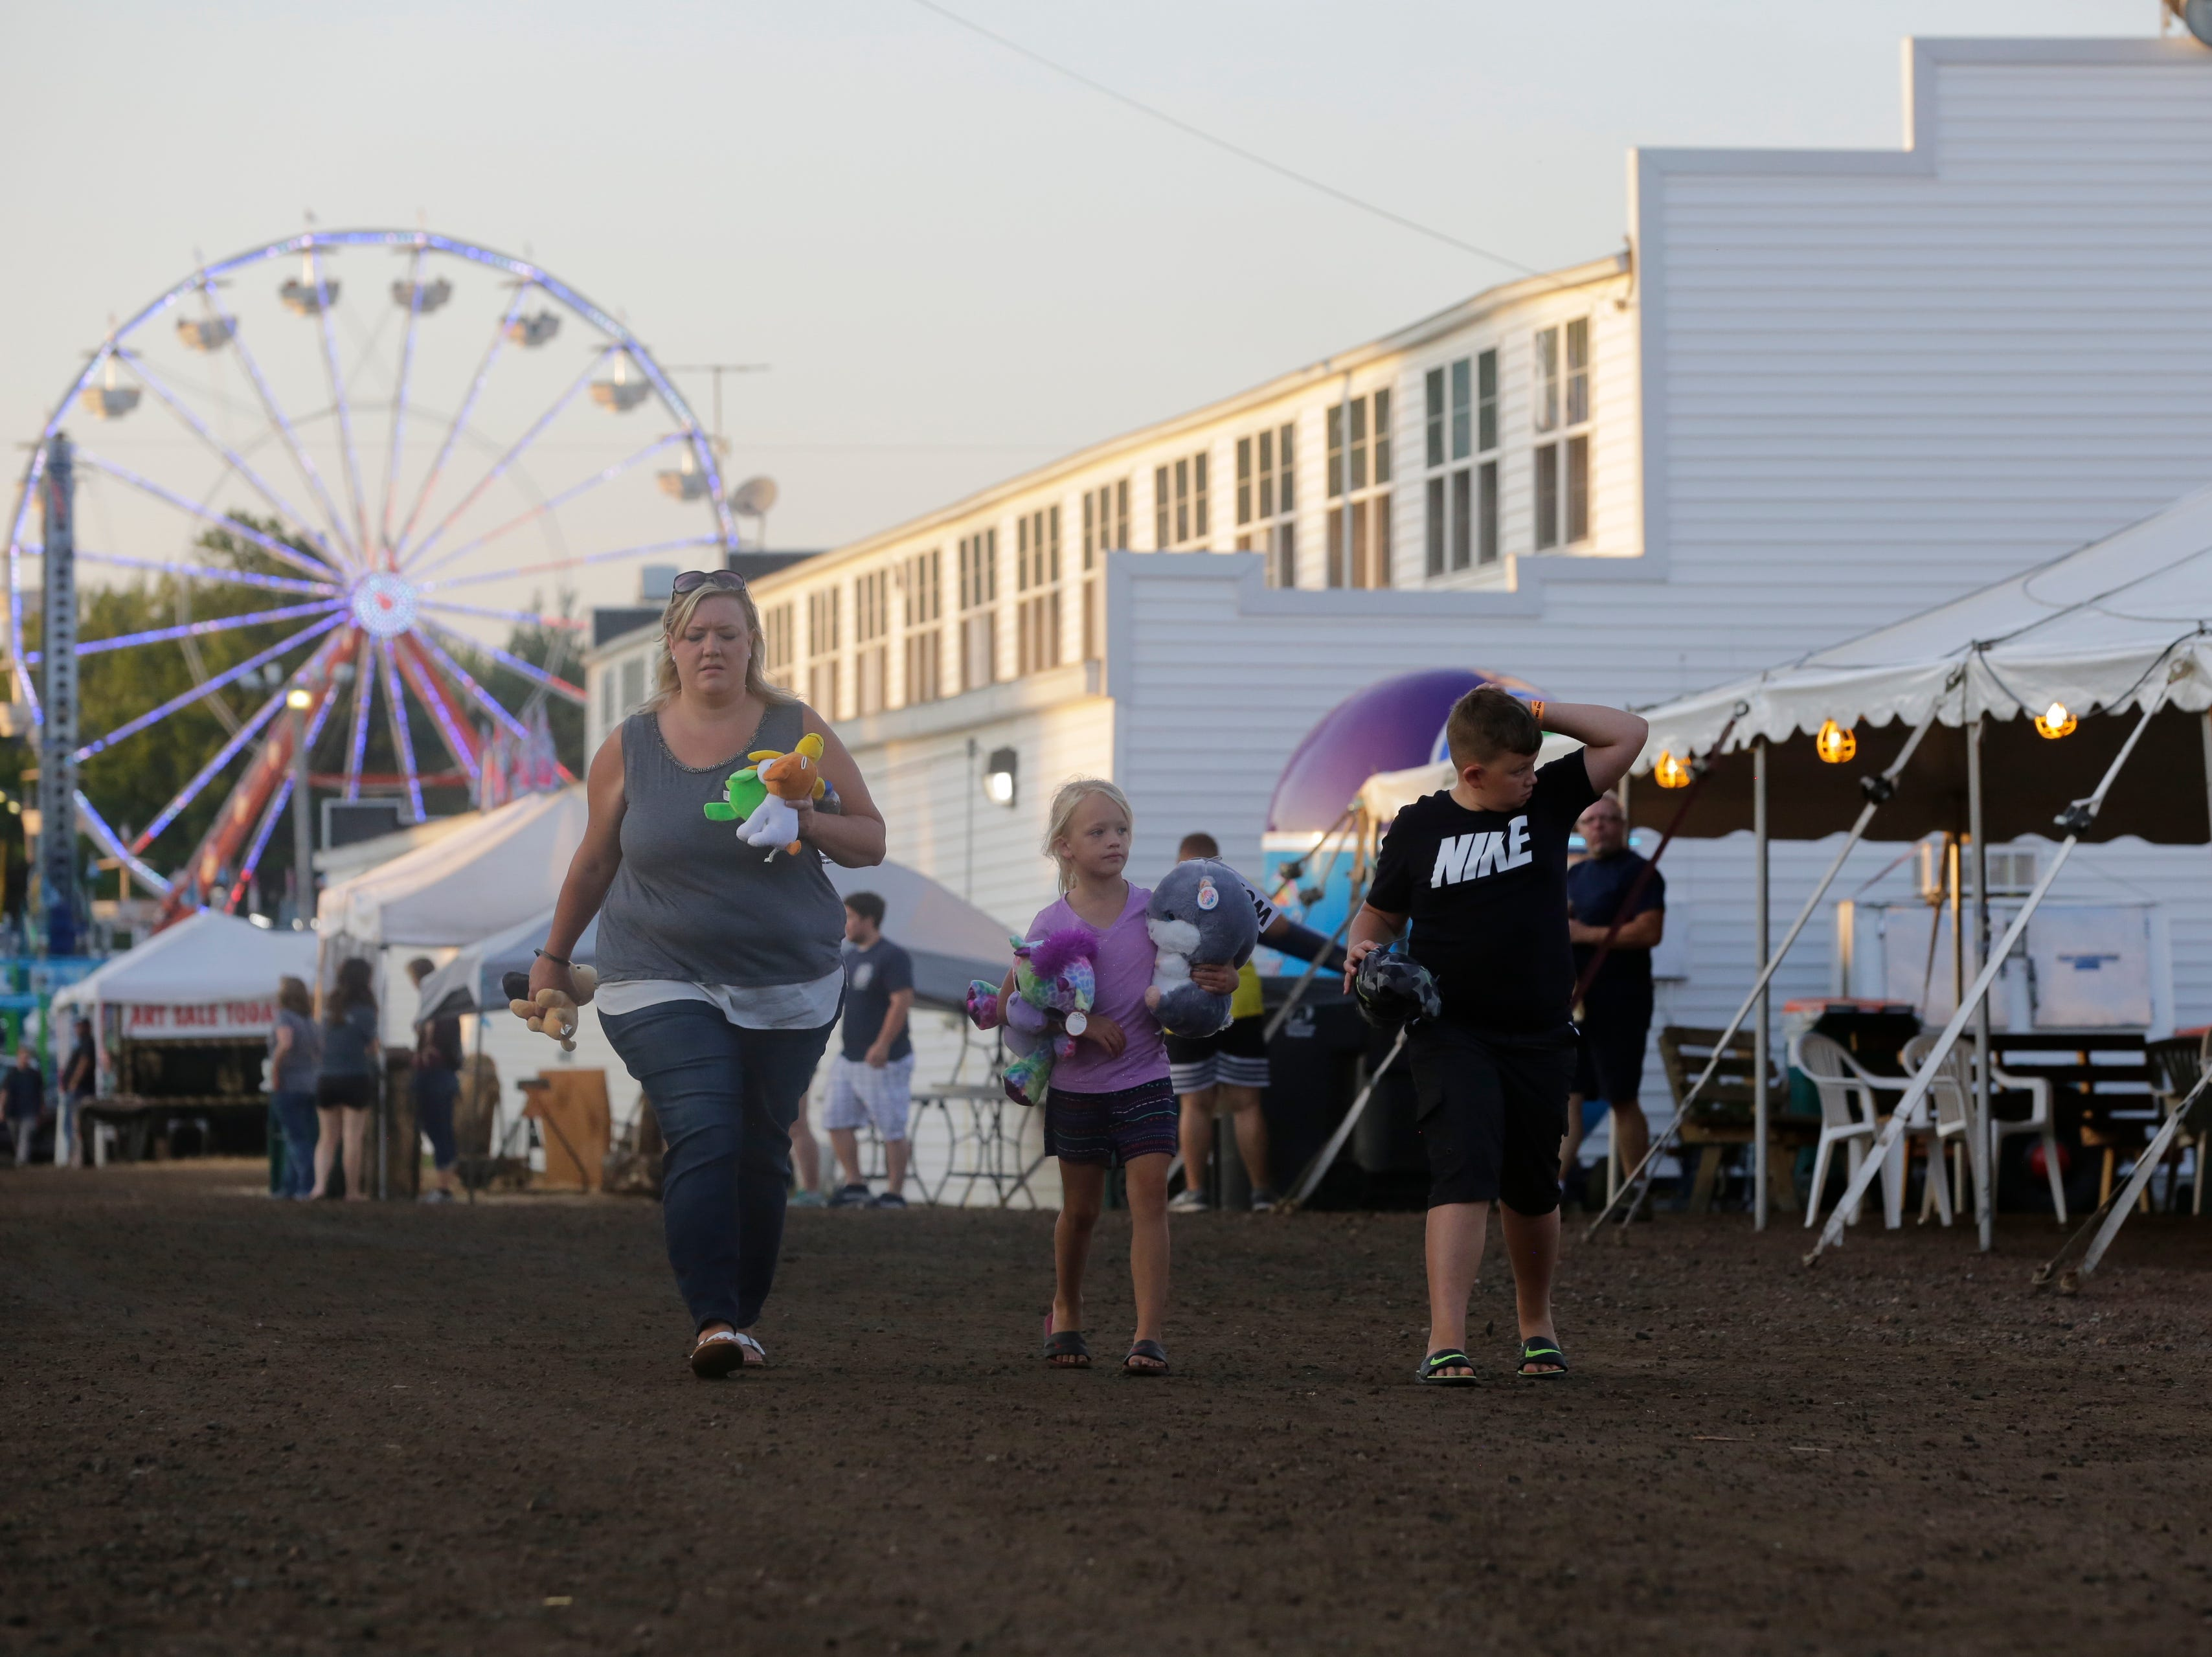 Lauren, Reagan, 6, and Peyton Karaliunas, 9, walk together at the Central Wisconsin State Fair in Marshfield Wednesday, August 22, 2018.